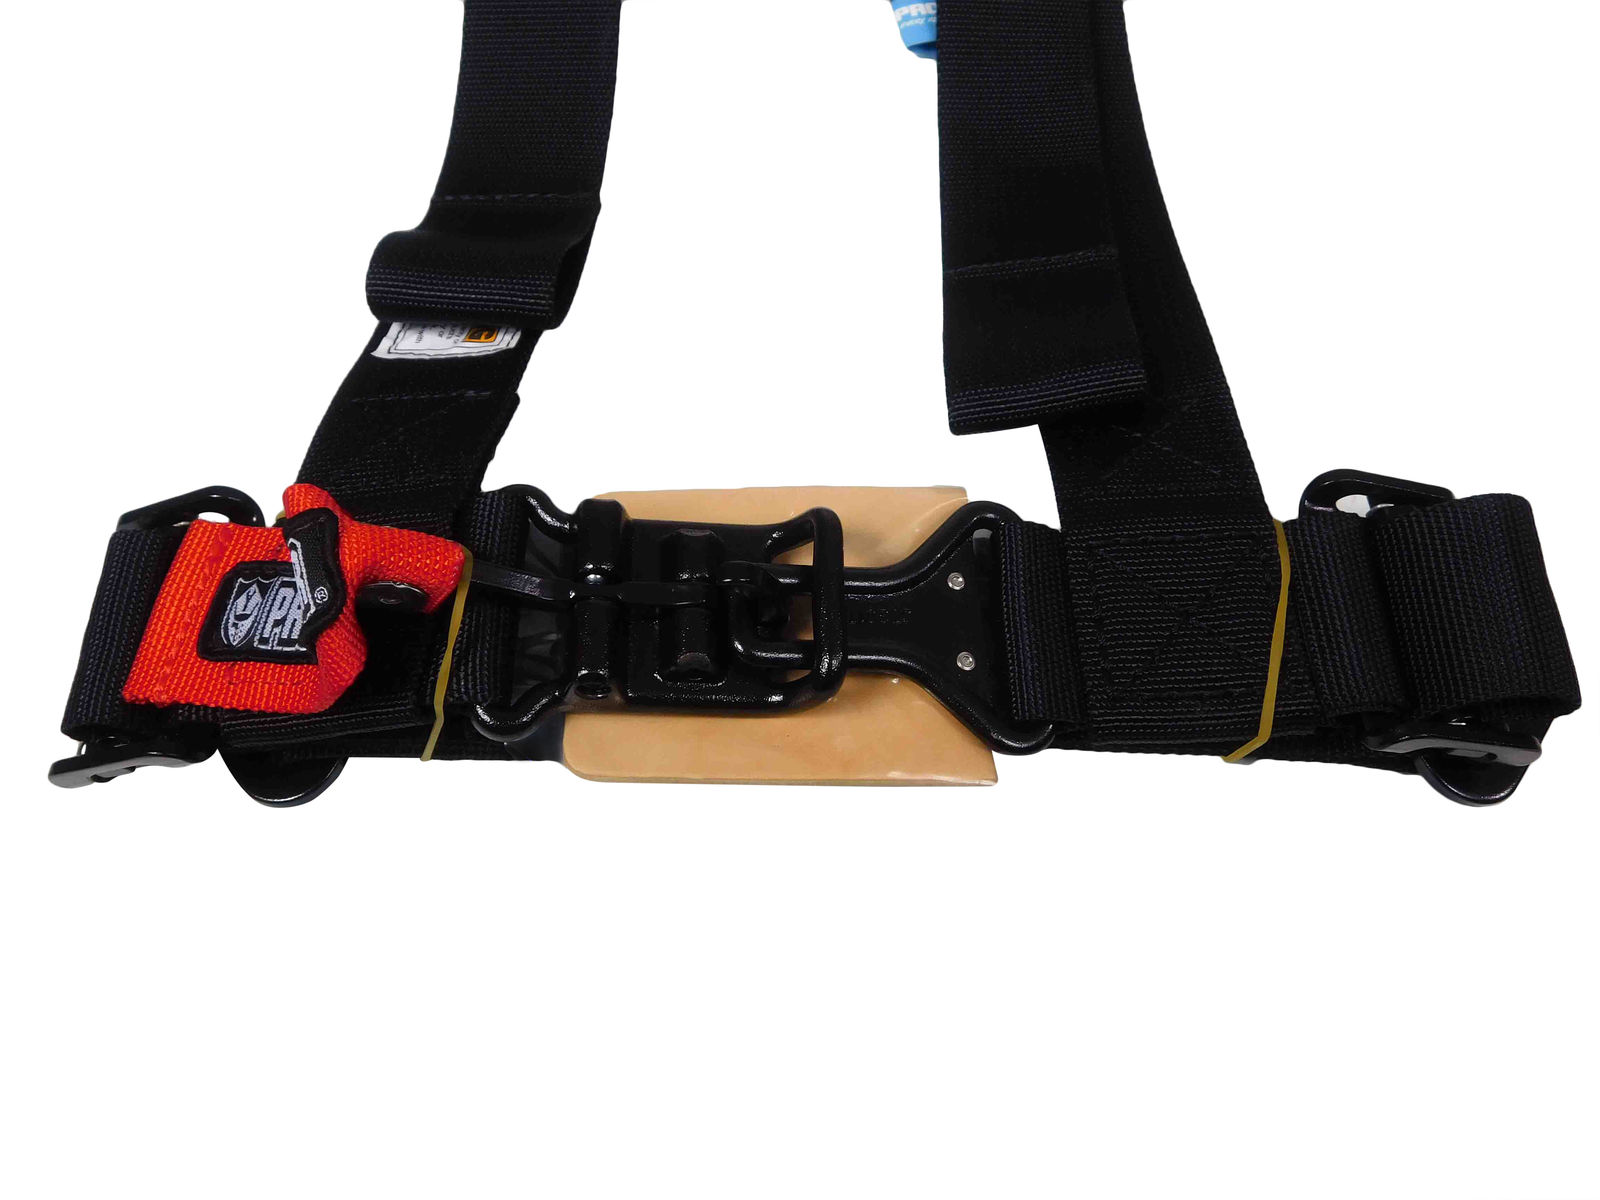 Pro-Armor-A114220-Black-4-Point-Harness-2inch-Straps-image-3